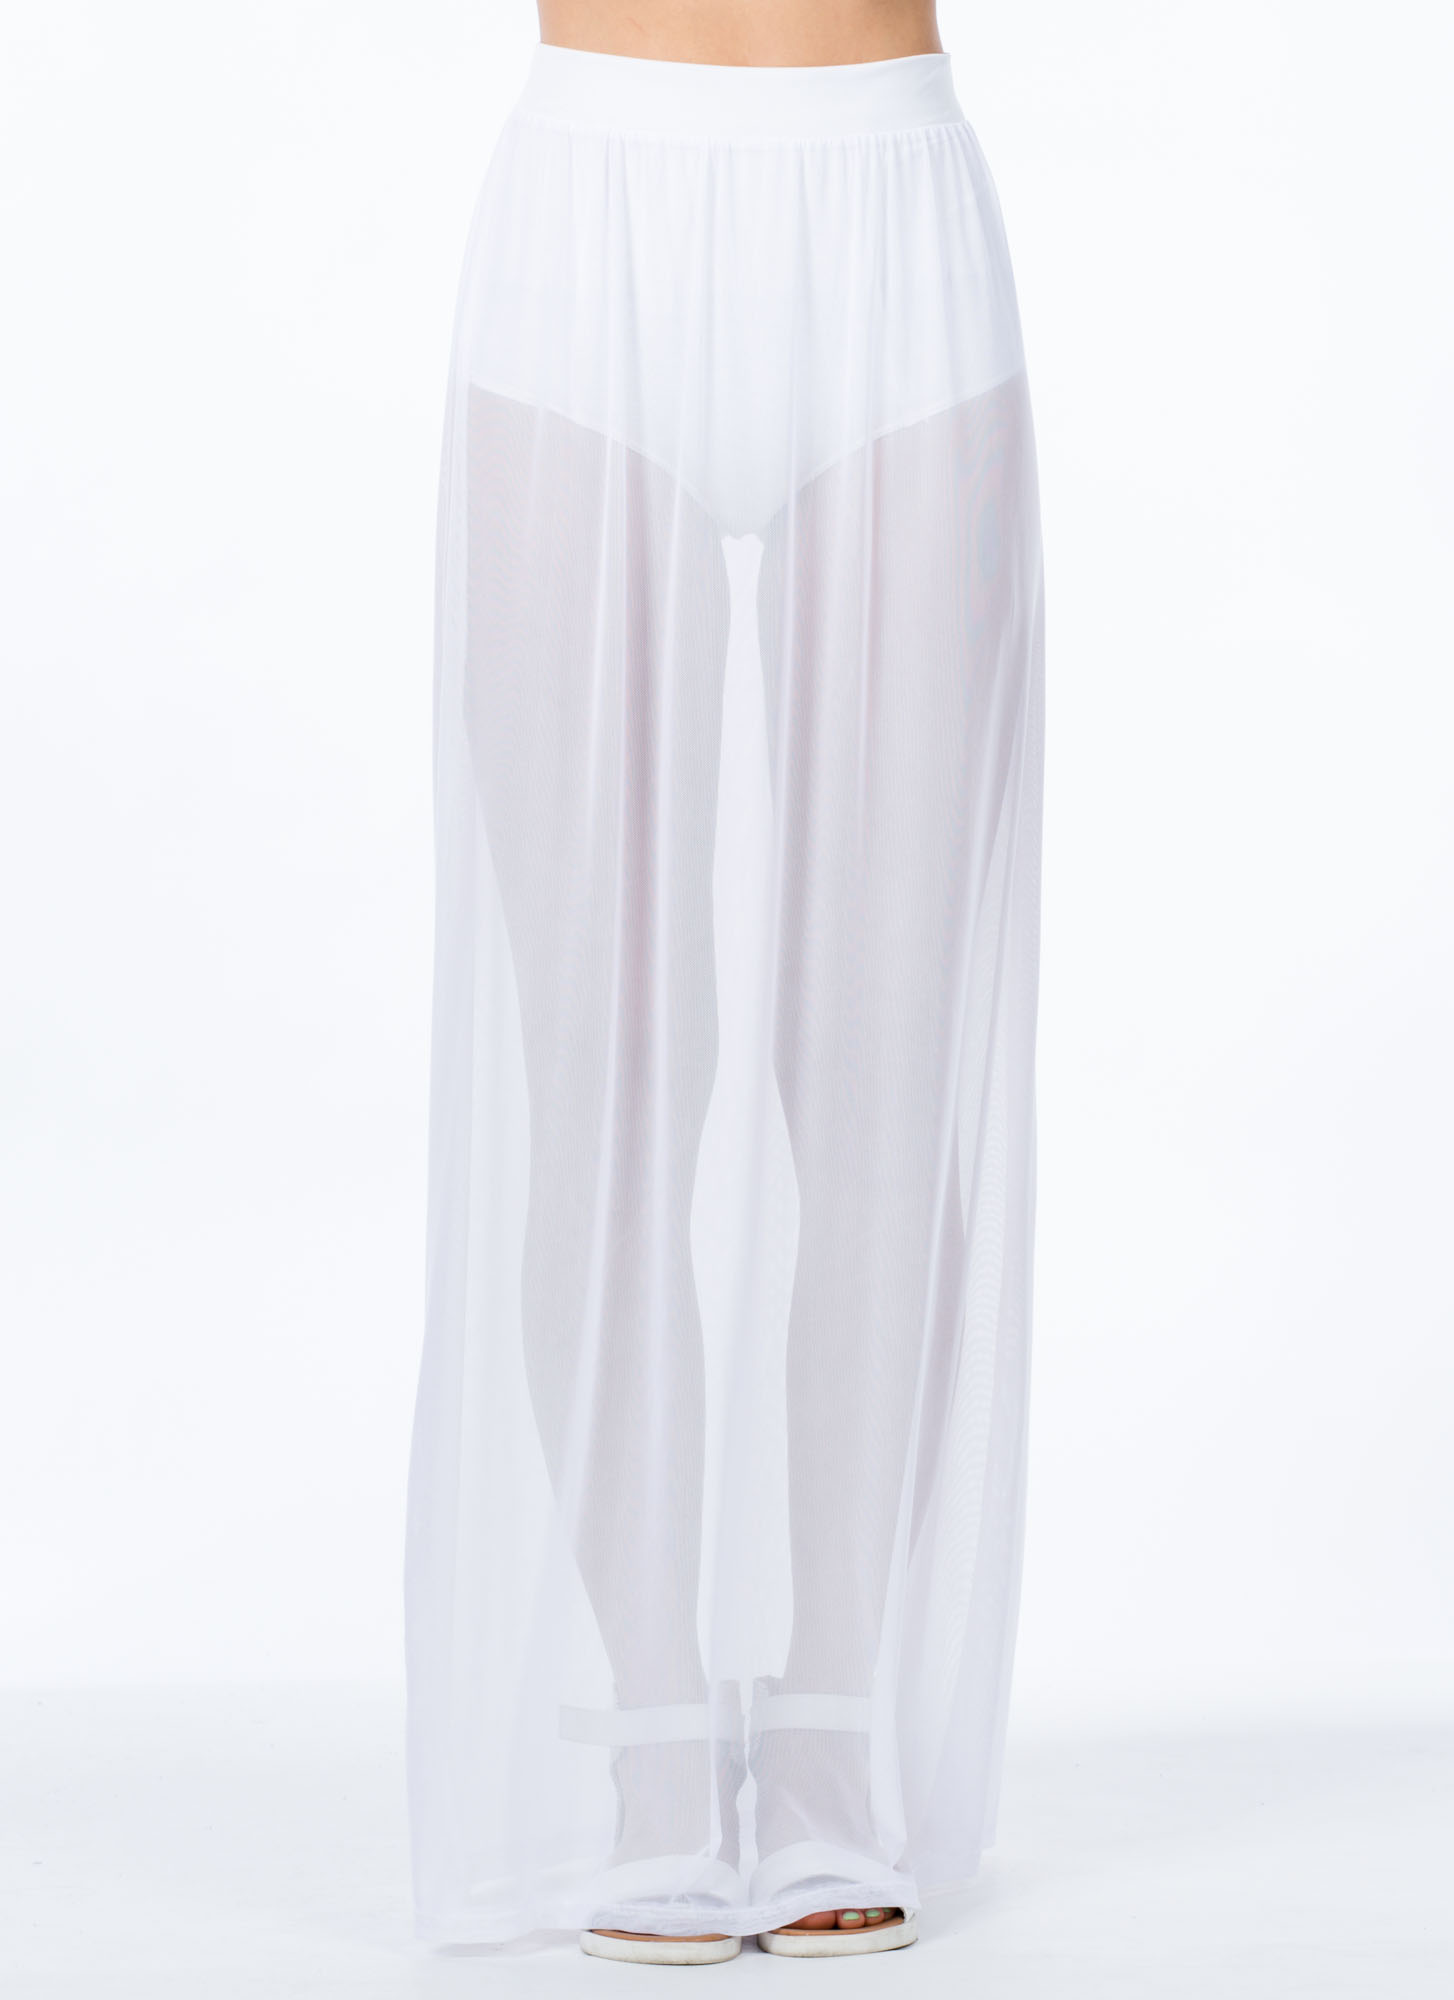 So Transparent Sheer Mesh Maxi Skirt WHITE